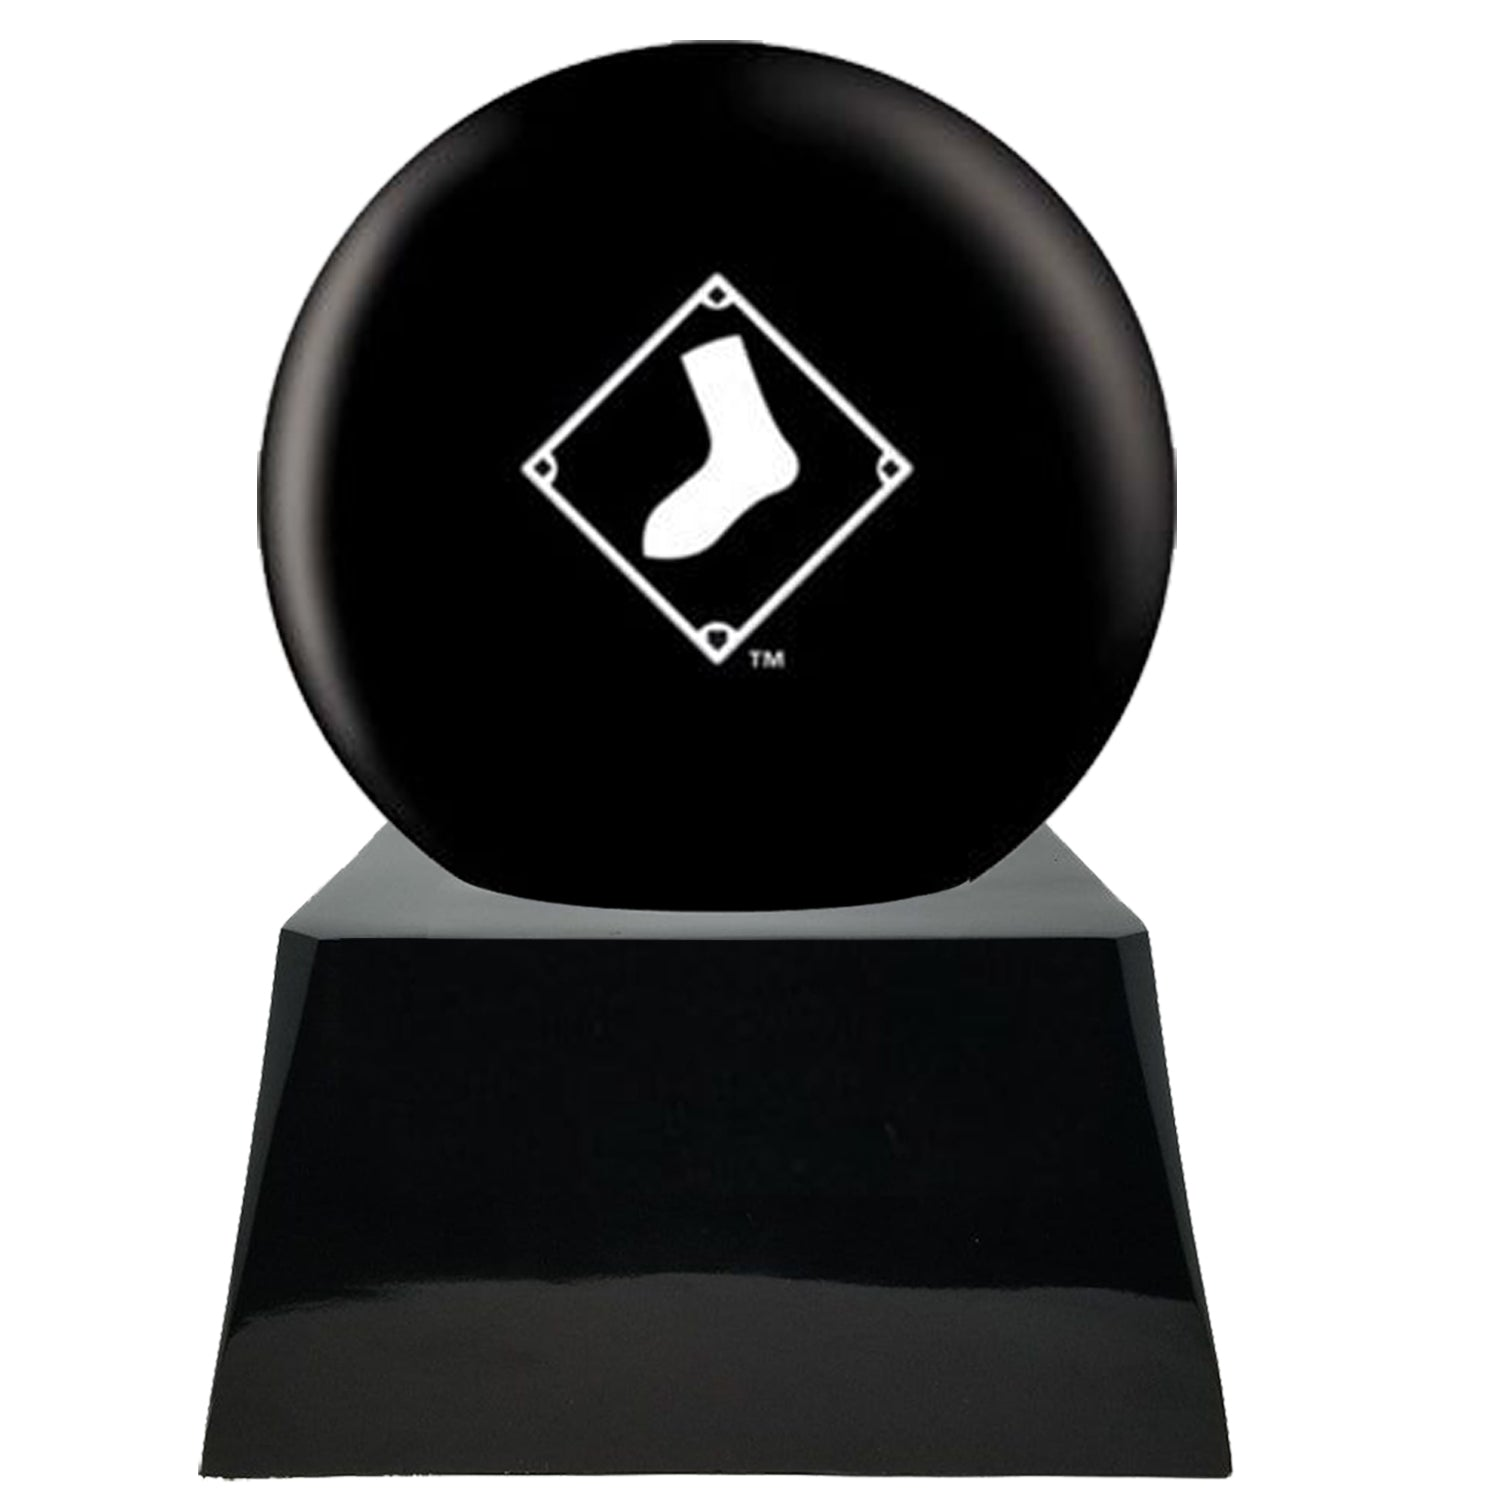 Baseball Cremation Urns For Human Ashes - Baseball Team Cremation Urn and Chicago White Sox Ball Decor with custom metal plaque - Memorials4u